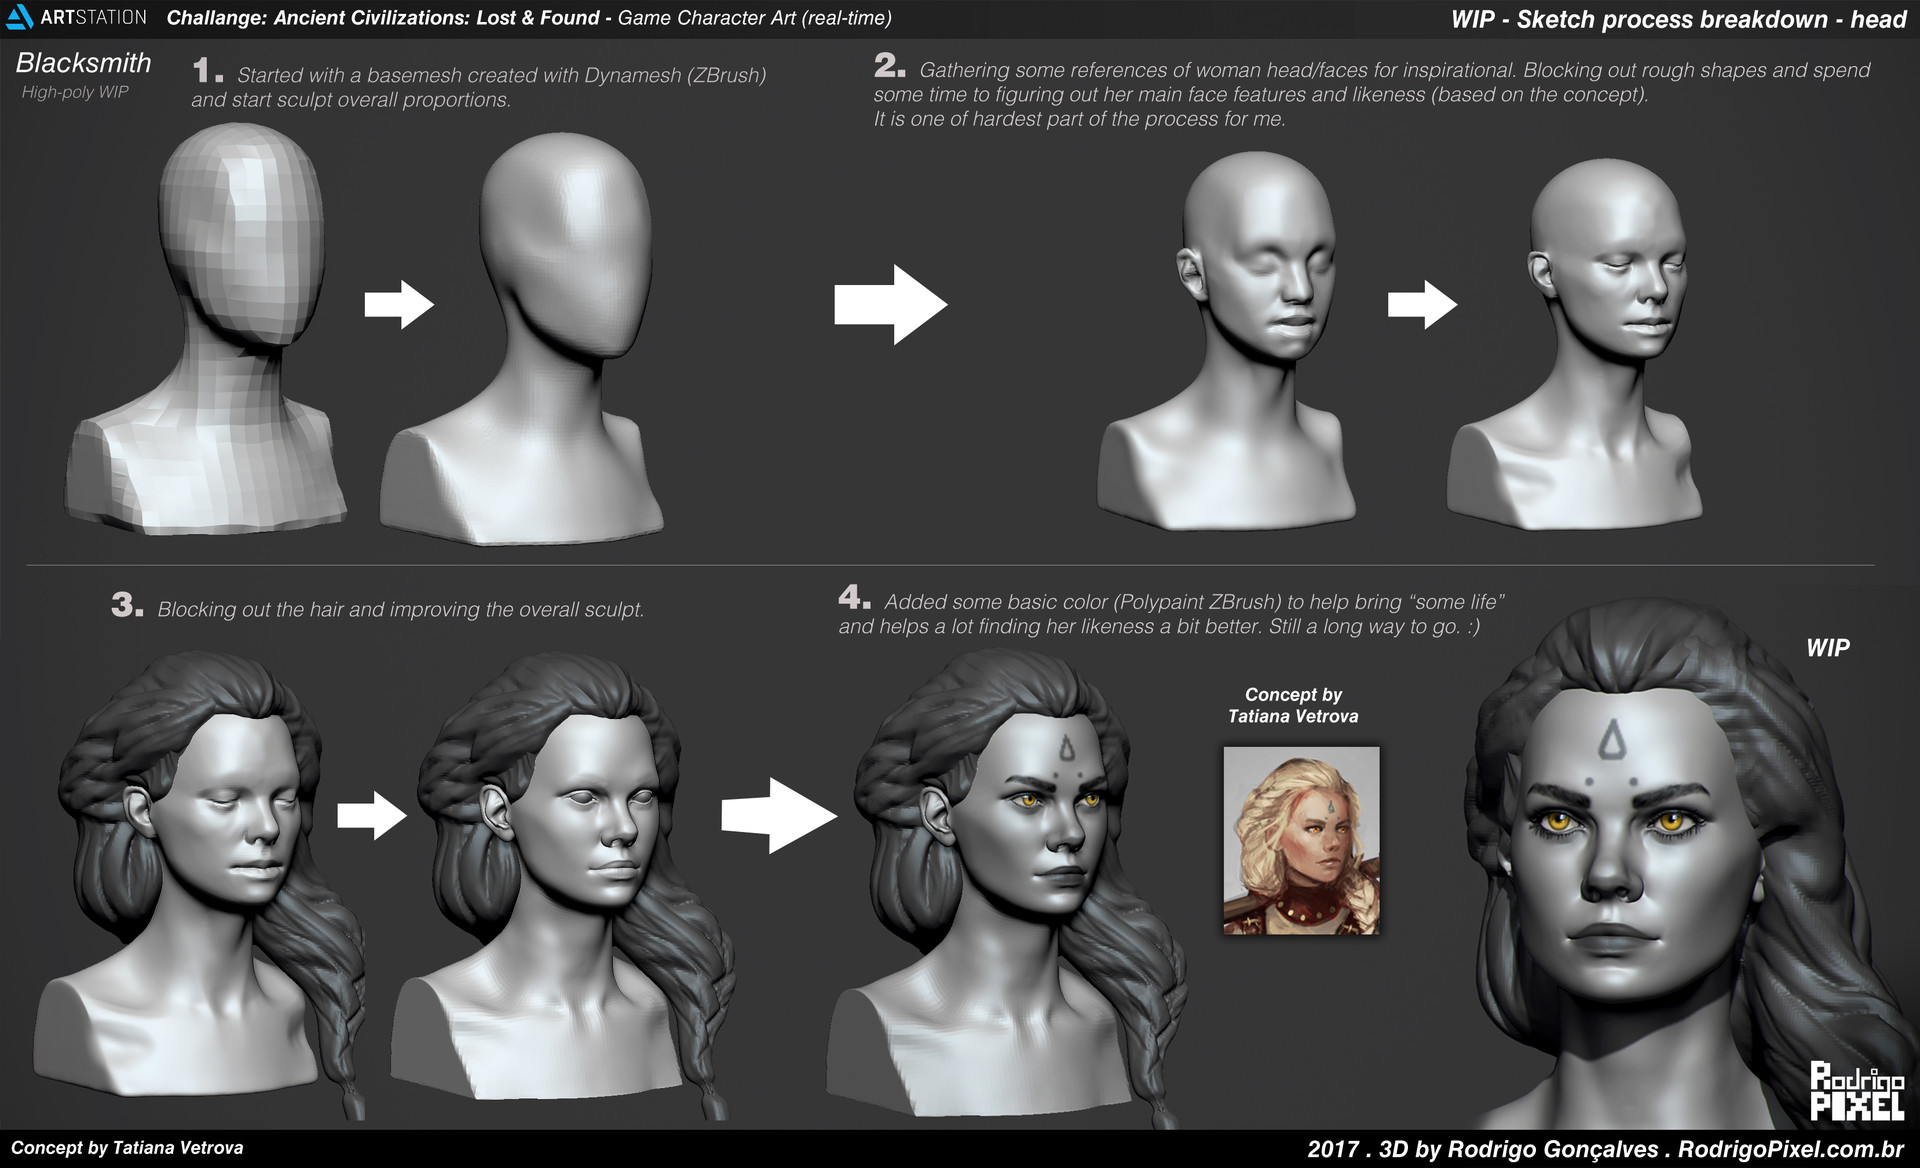 rodrigo-goncalves-blacksmith-highpoly-wip-hex-sketch-breakdown.jpg